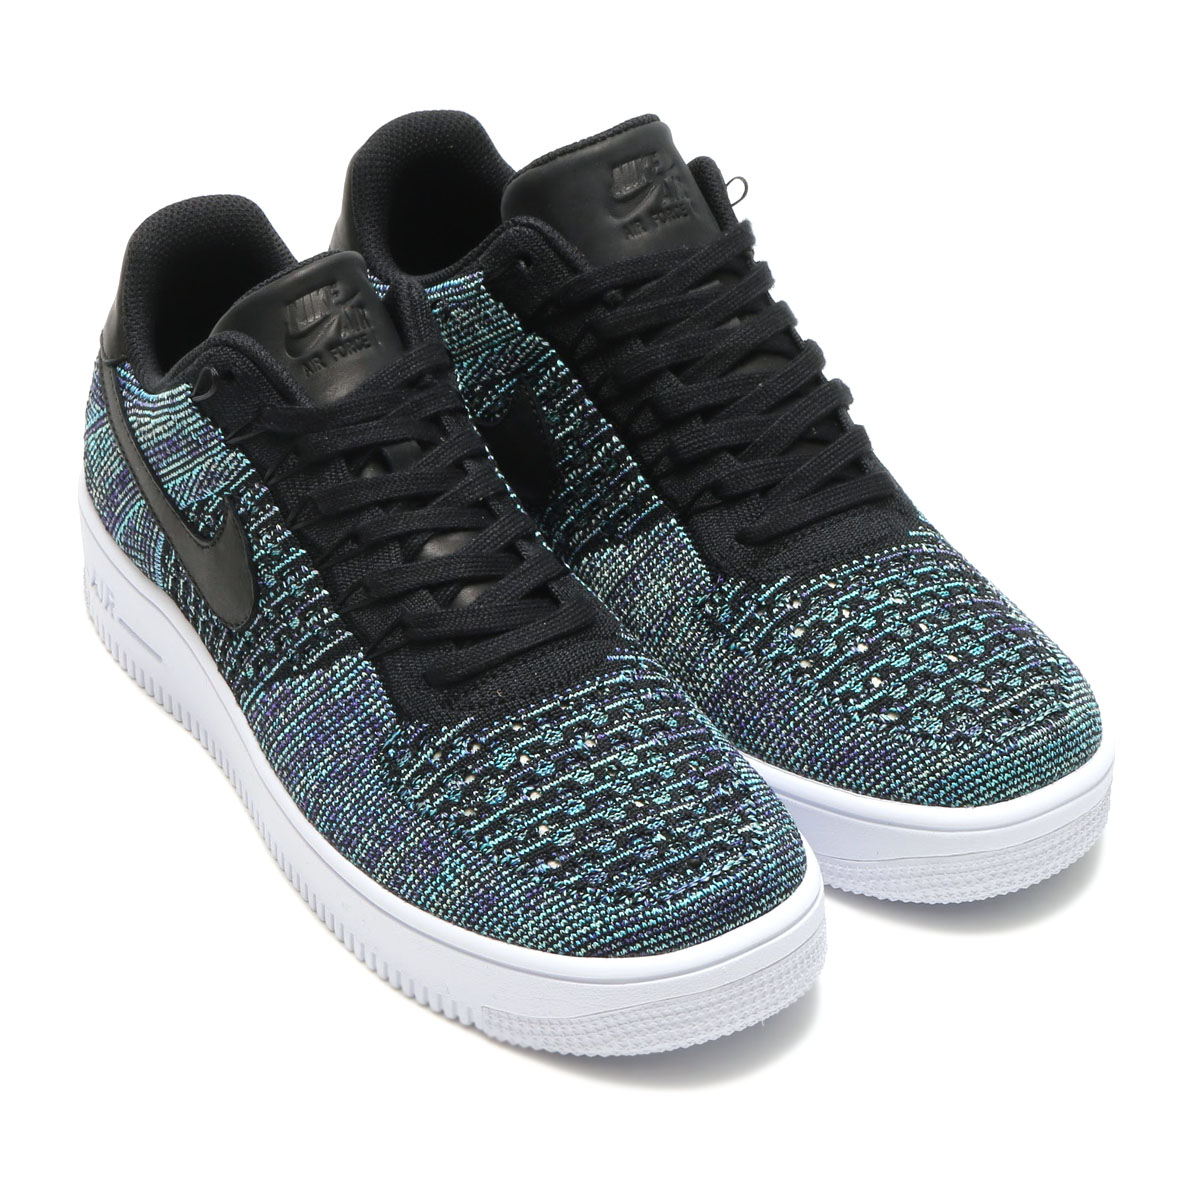 separation shoes c1ee5 6c747 Product Information. See the original Japanese page. Air force 1 series Nike  air force 1 ultra fly knit LOW ...